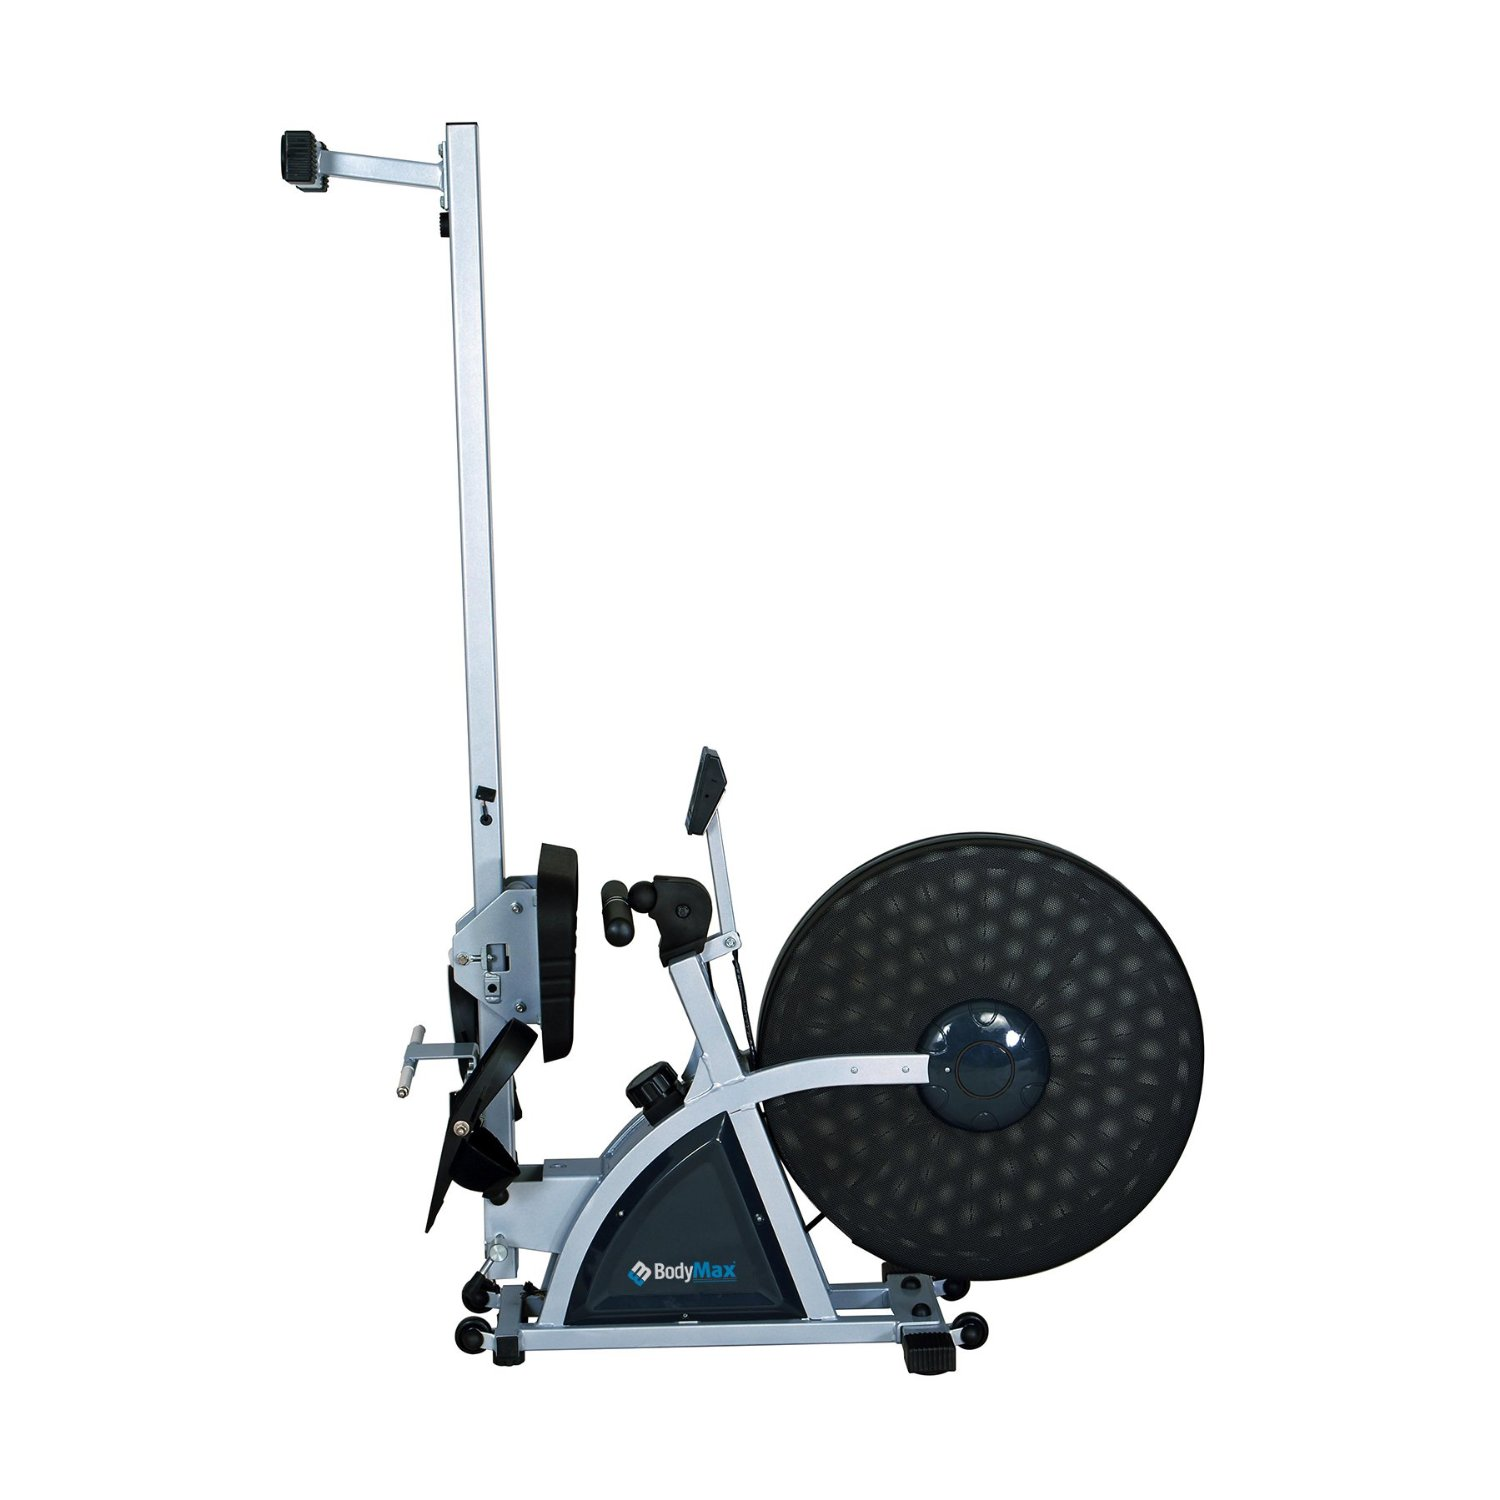 rowing machine ratings